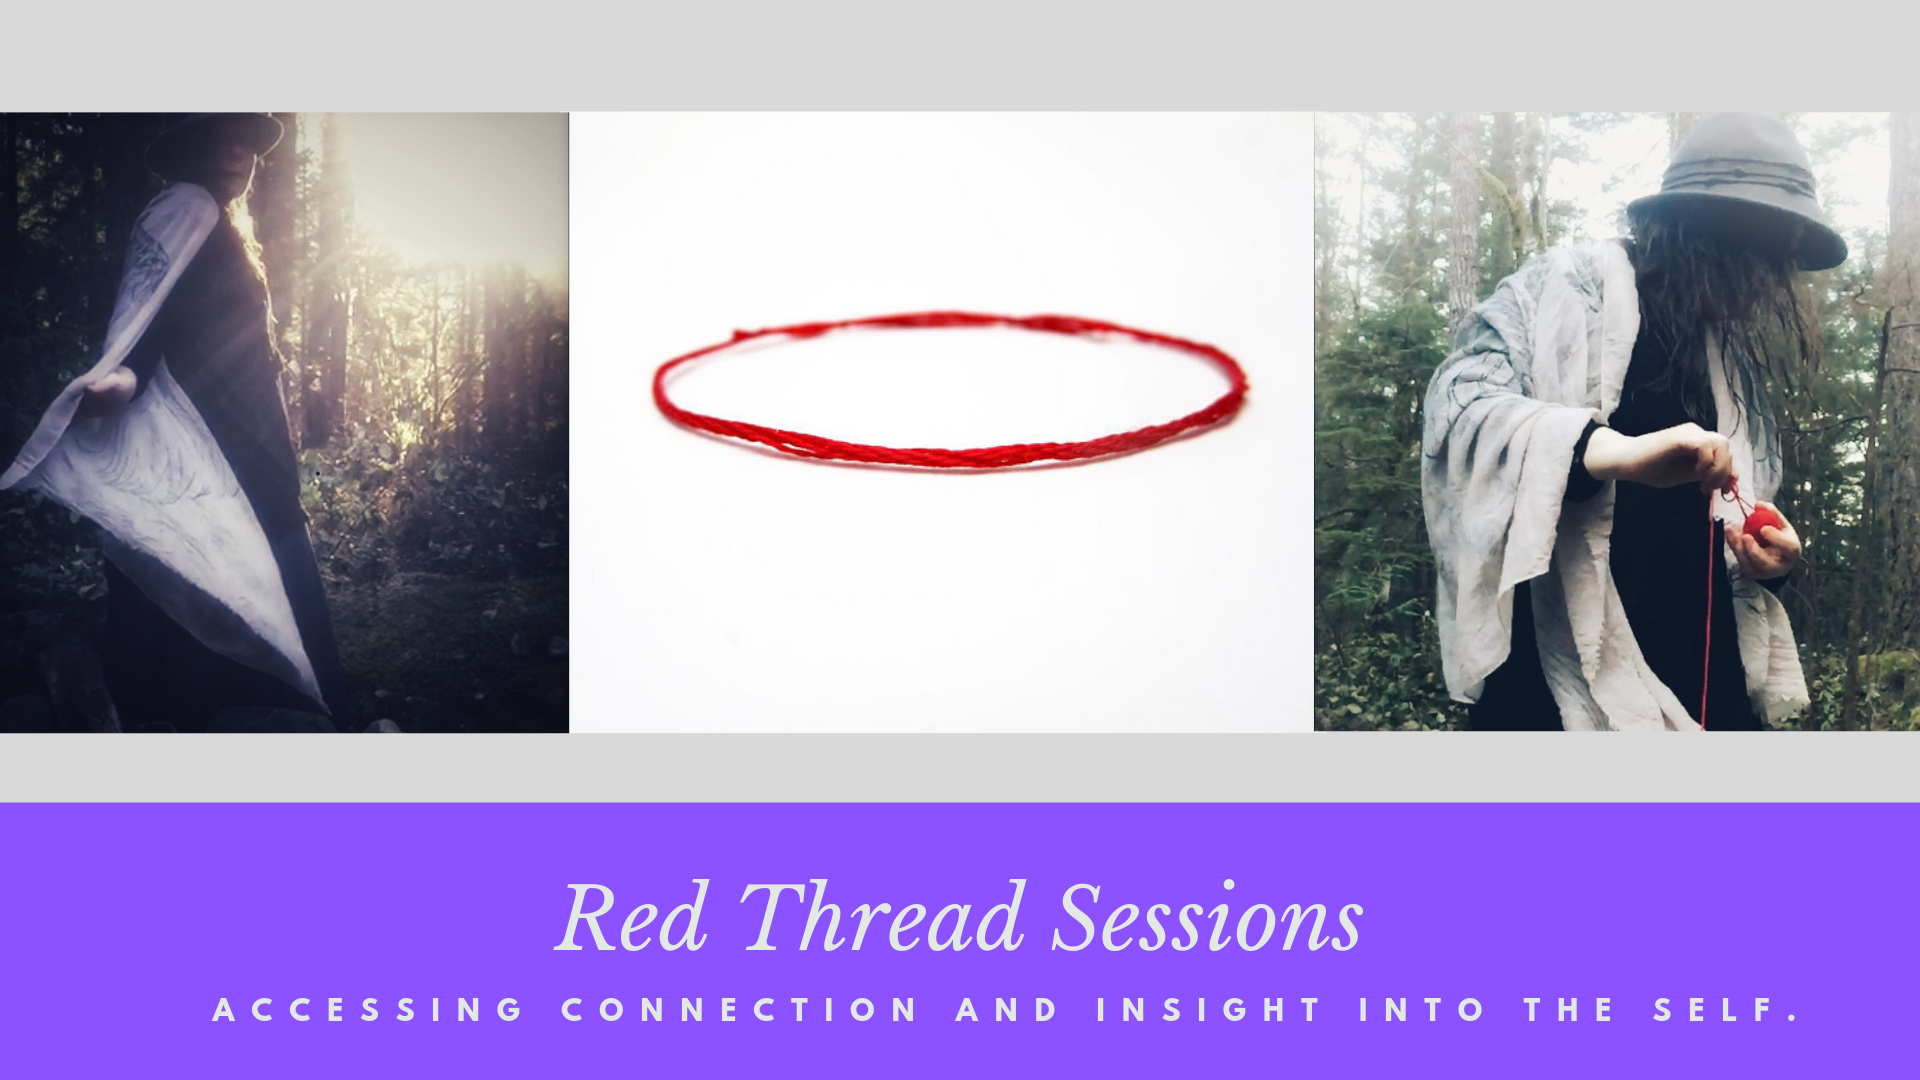 Red Thread Sessions